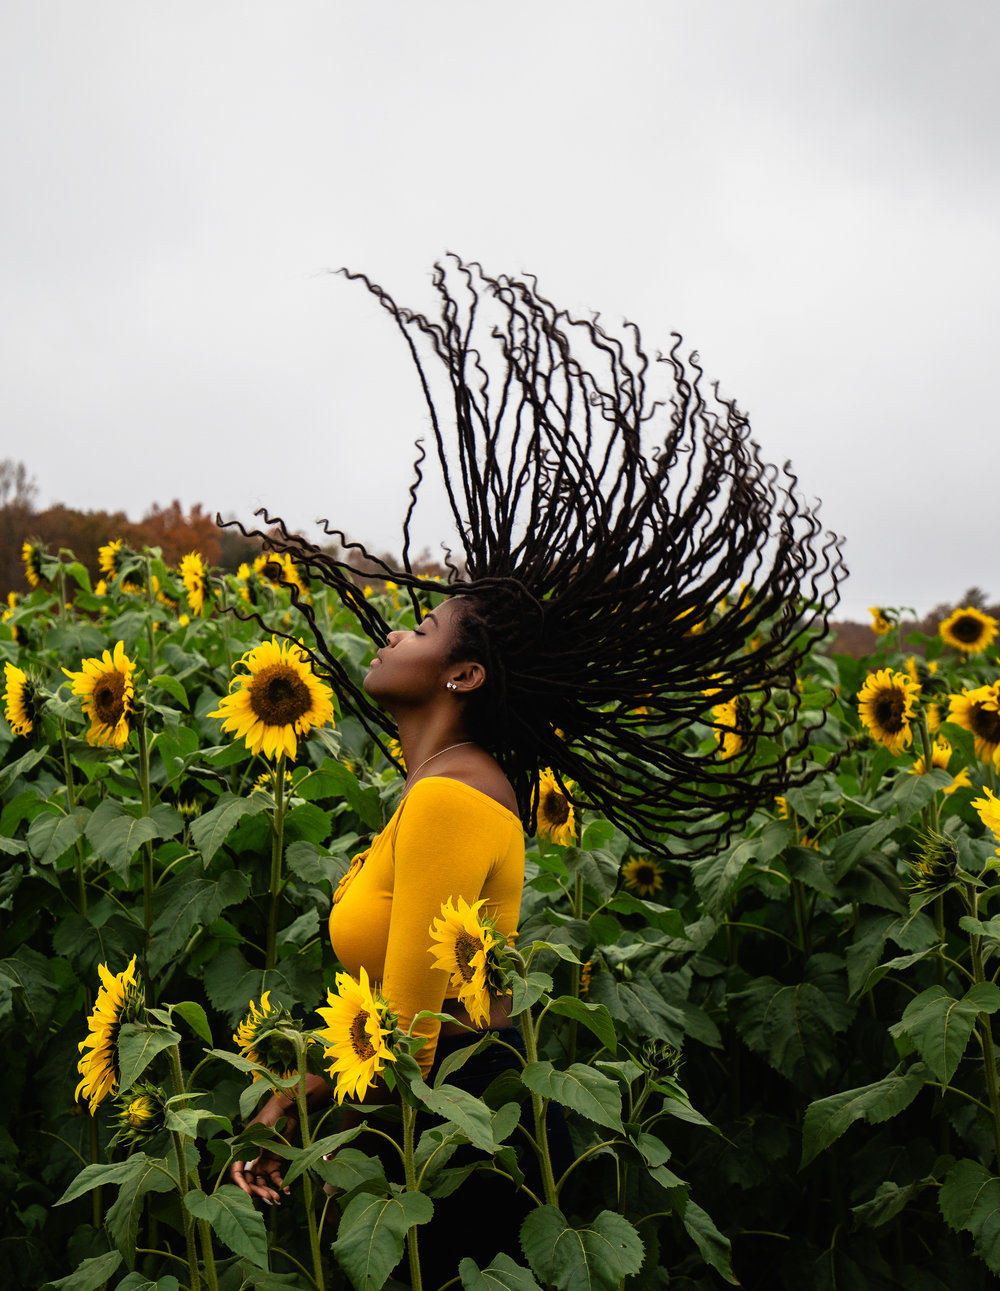 For the Love of Sunflowers